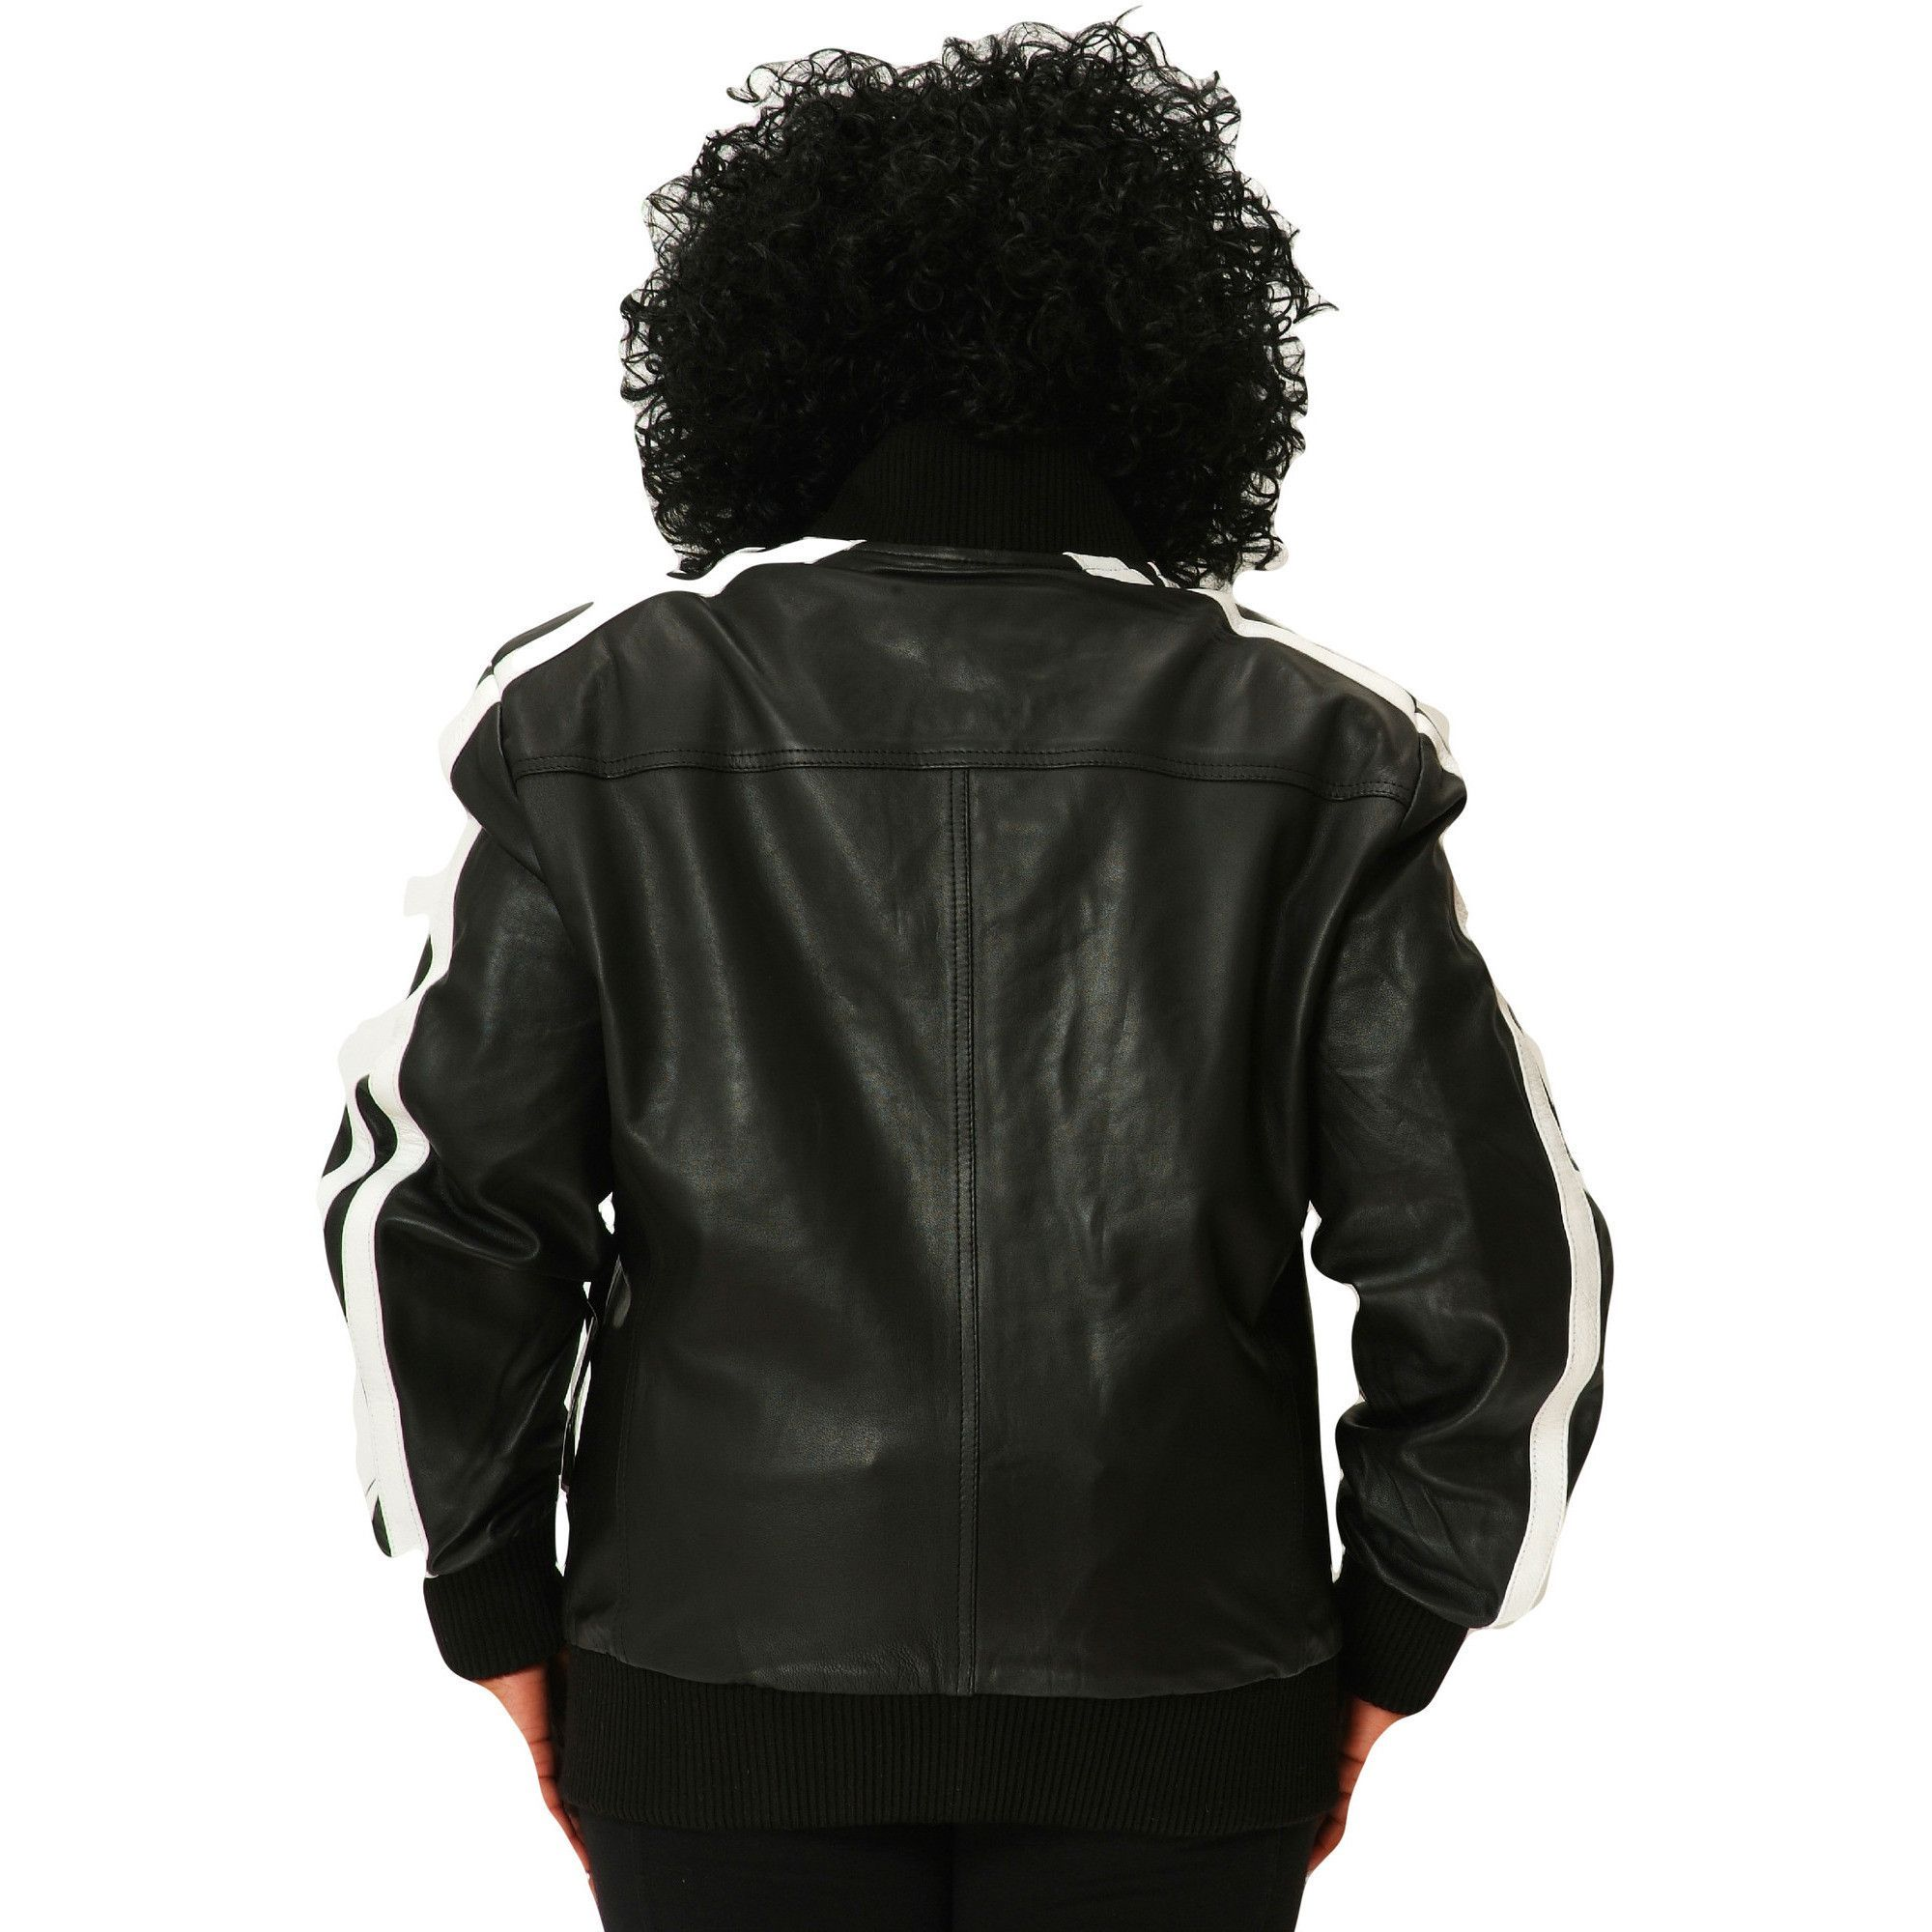 Womens Leather Jacket Black Track Celebrity Style